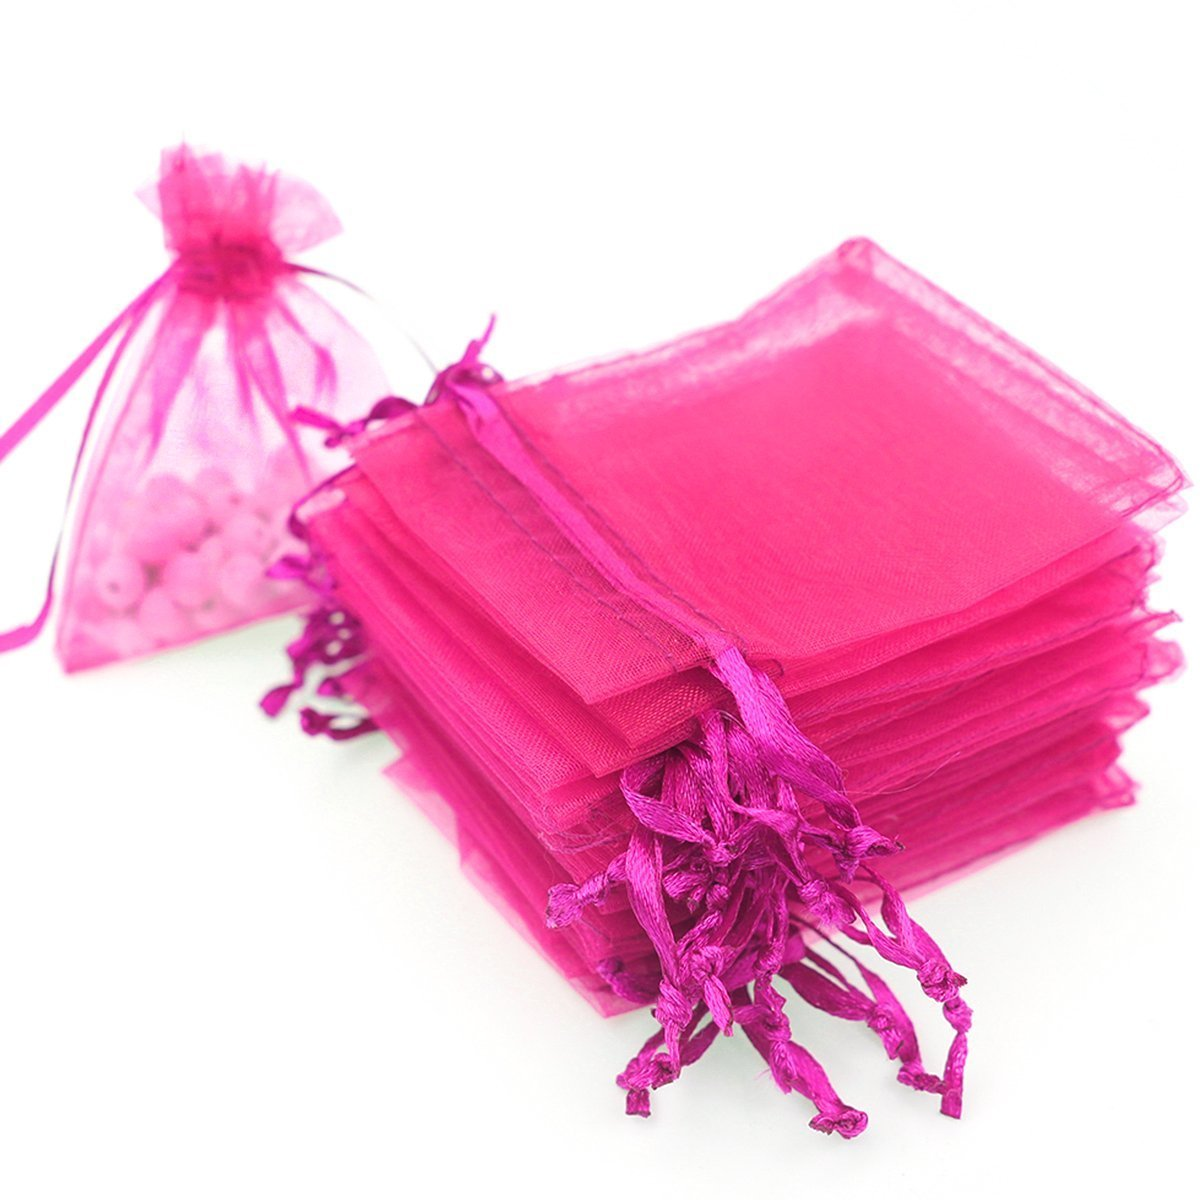 Dealglad 100pcs Drawstring Organza Jewelry Candy Pouch Party Wedding Favor Gift Bags (4x6'', Rose)